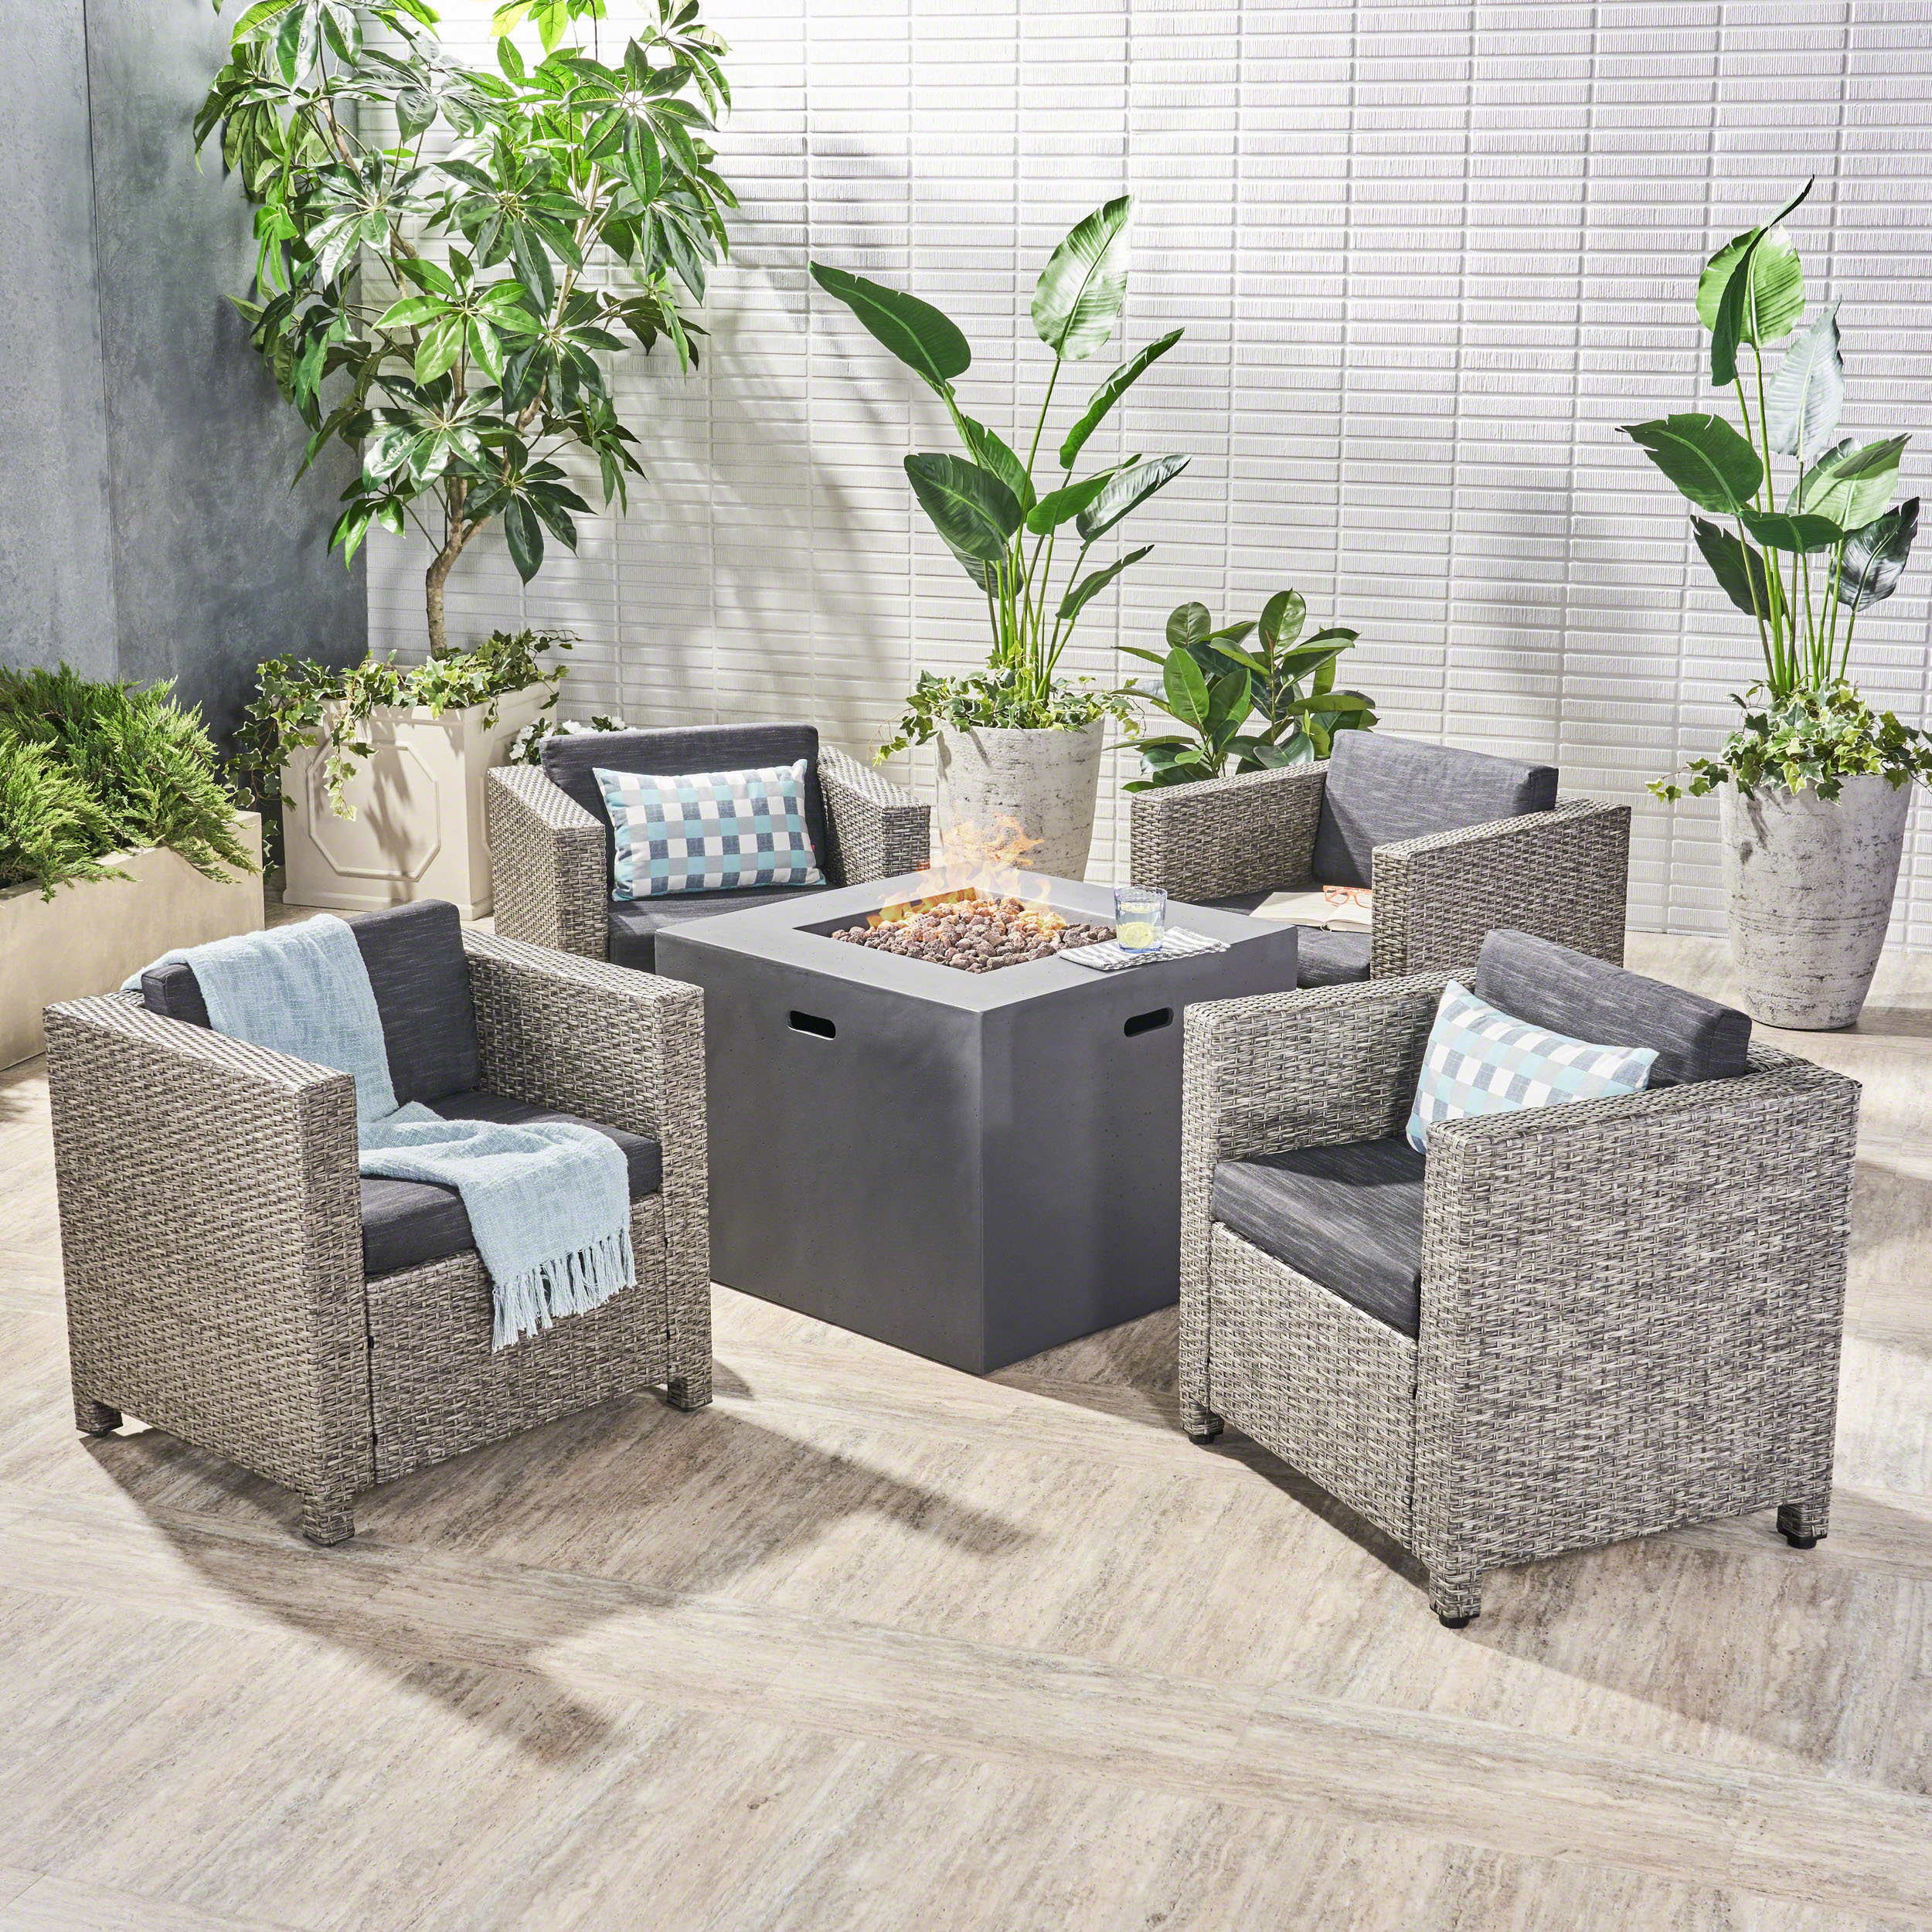 Franklin Outdoor 5 Piece Wicker Club Chair Set with cushions and Square Fire Pit, Dark Brown, Beige, Light Gray